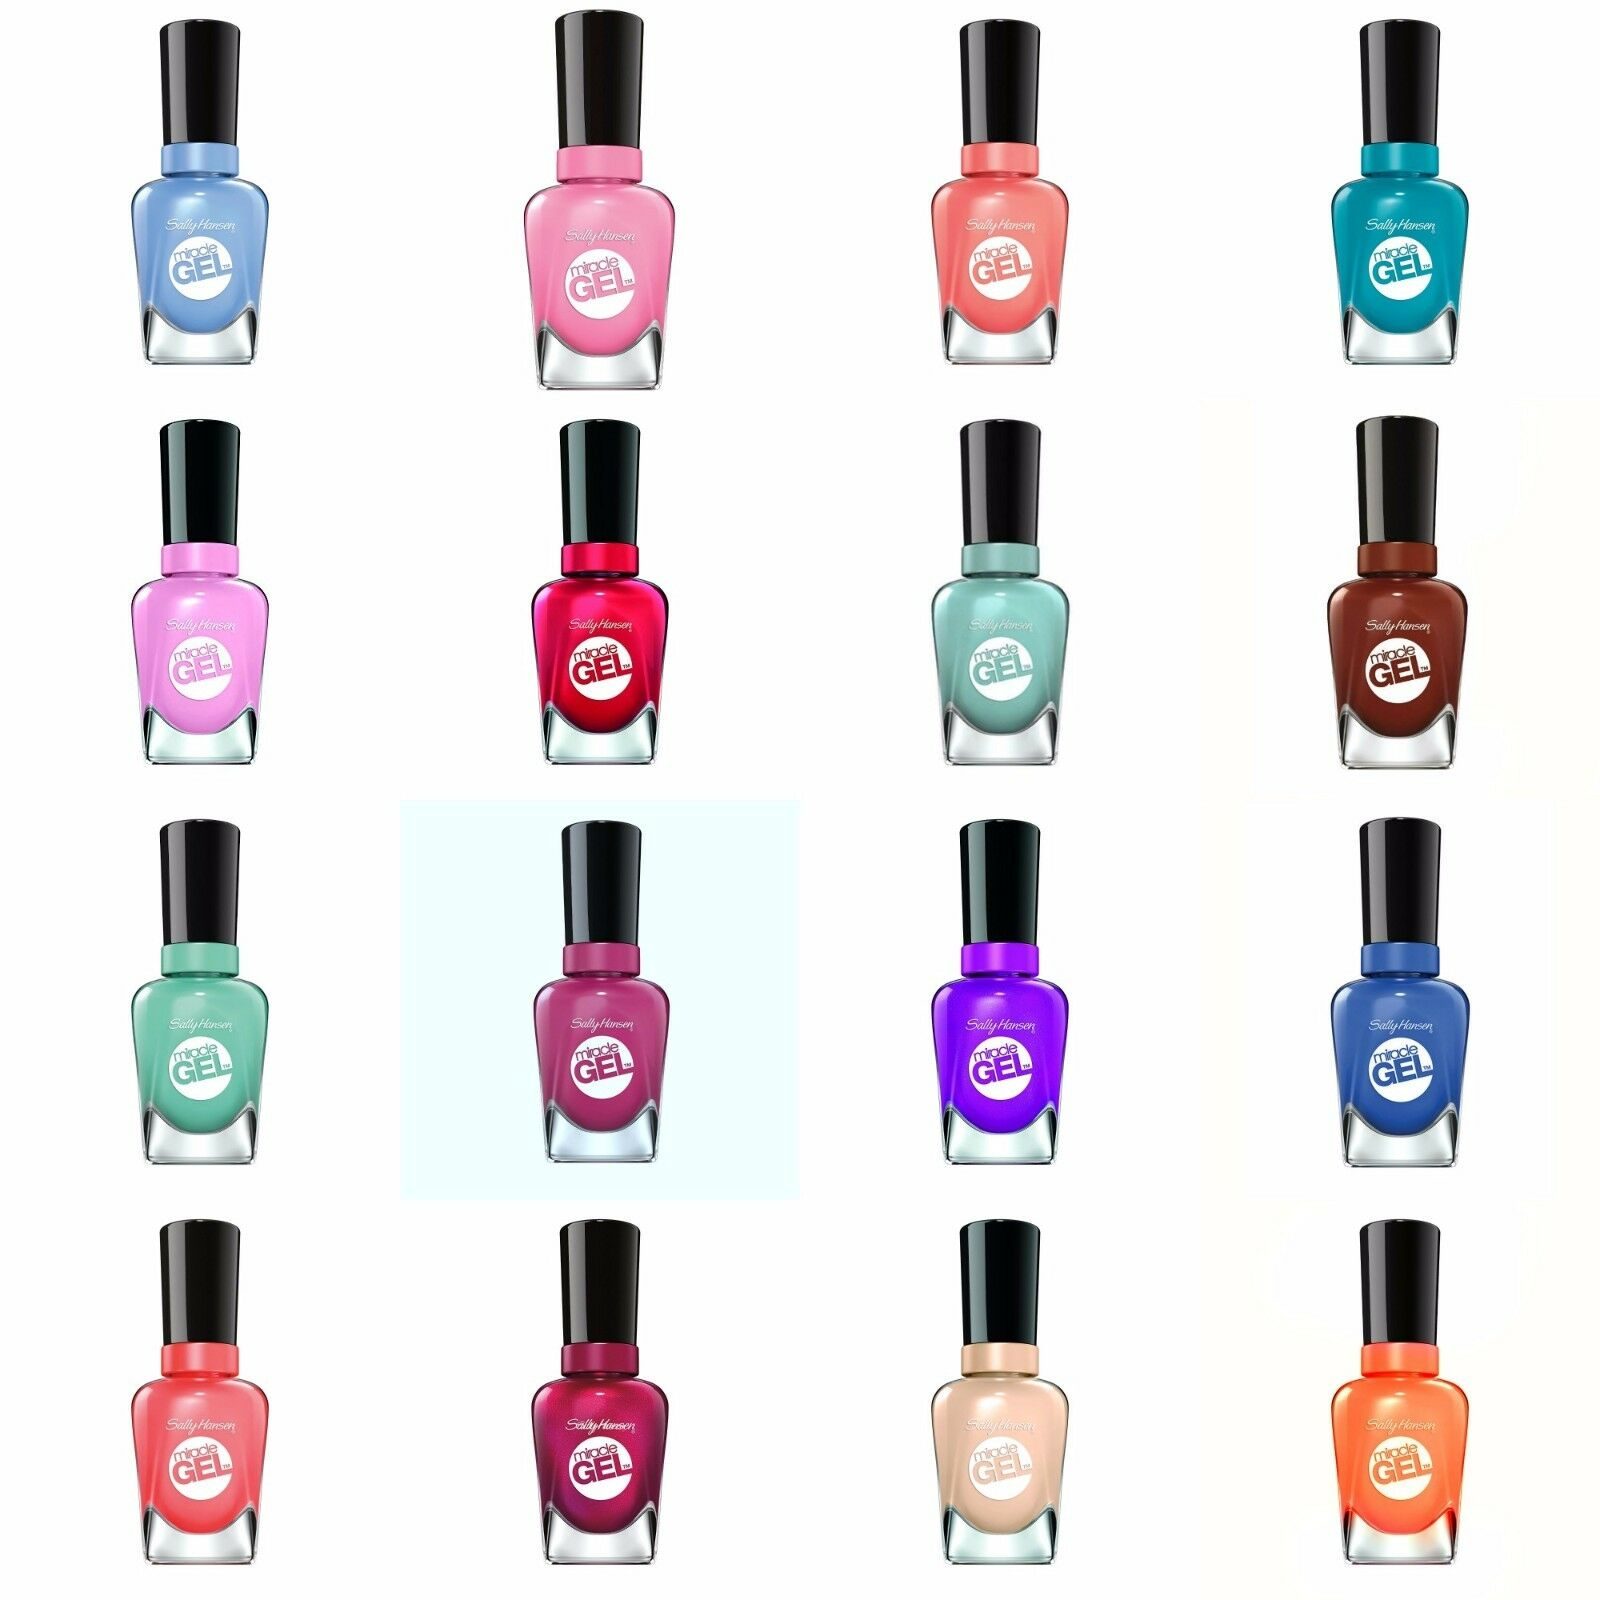 Изображение товара Sally Hansen Miracle Gel Nail Polish Lacquer 14.7mL Choose Your Shade New